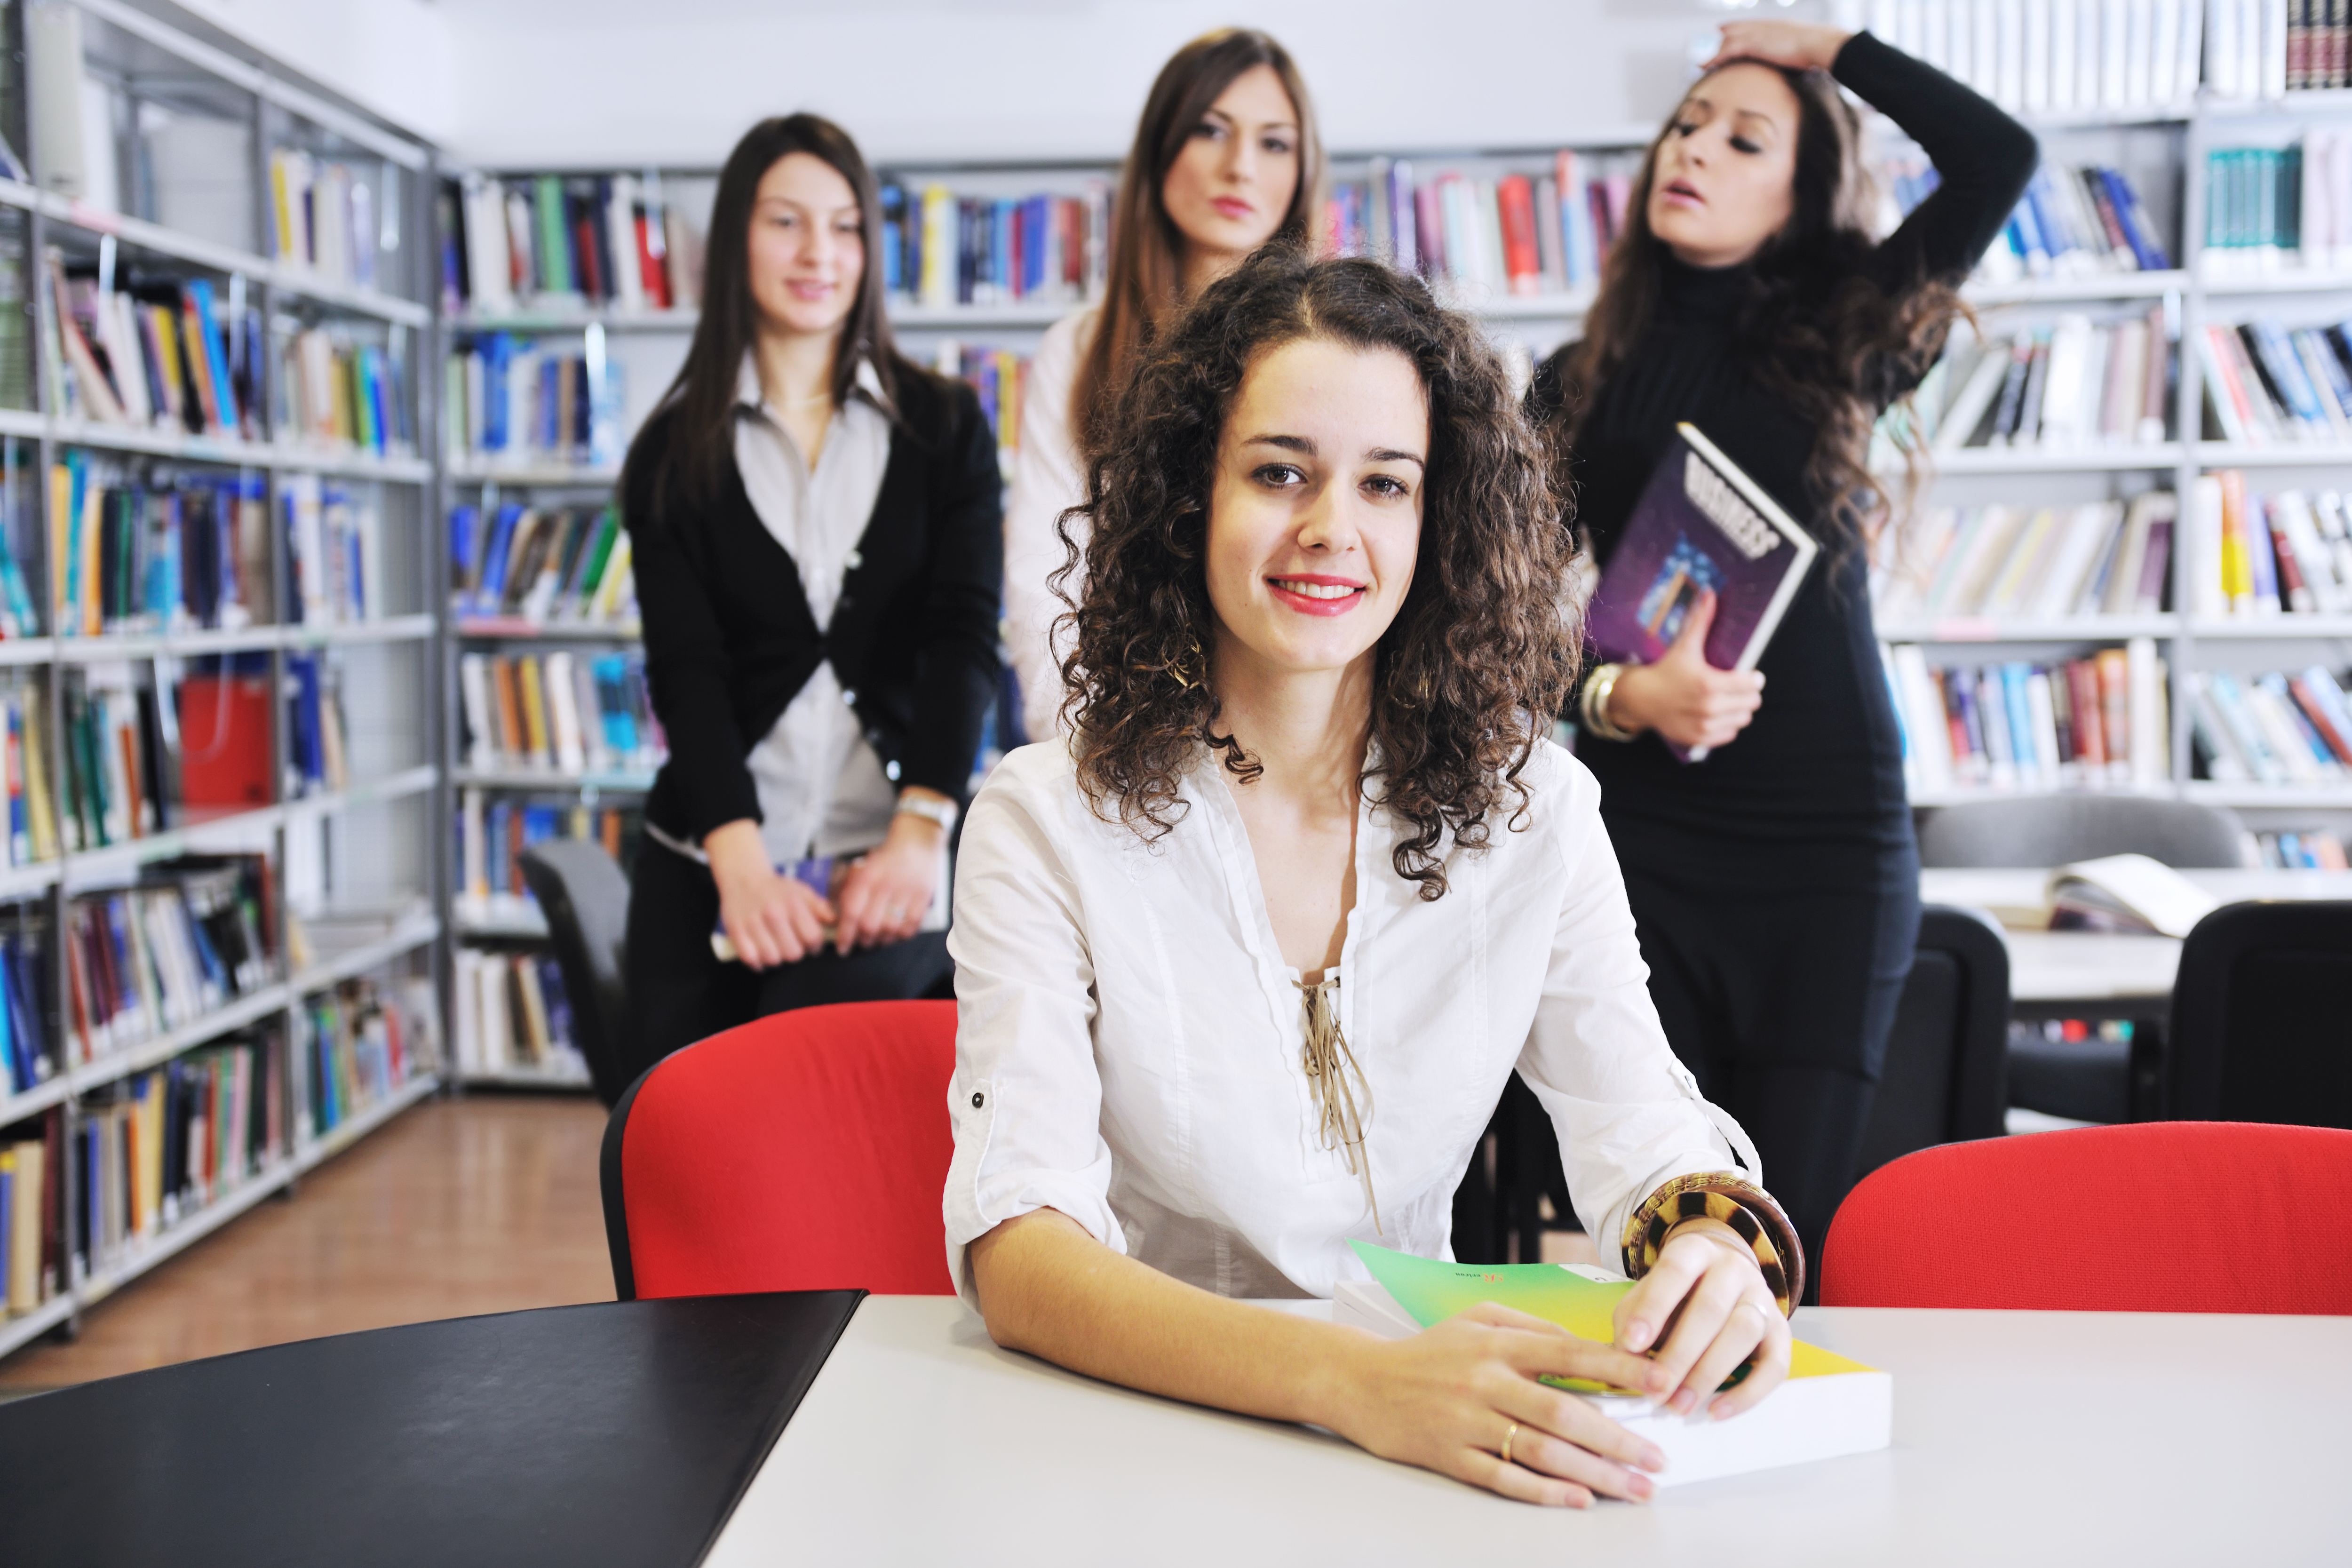 happy student woman group portrait at library